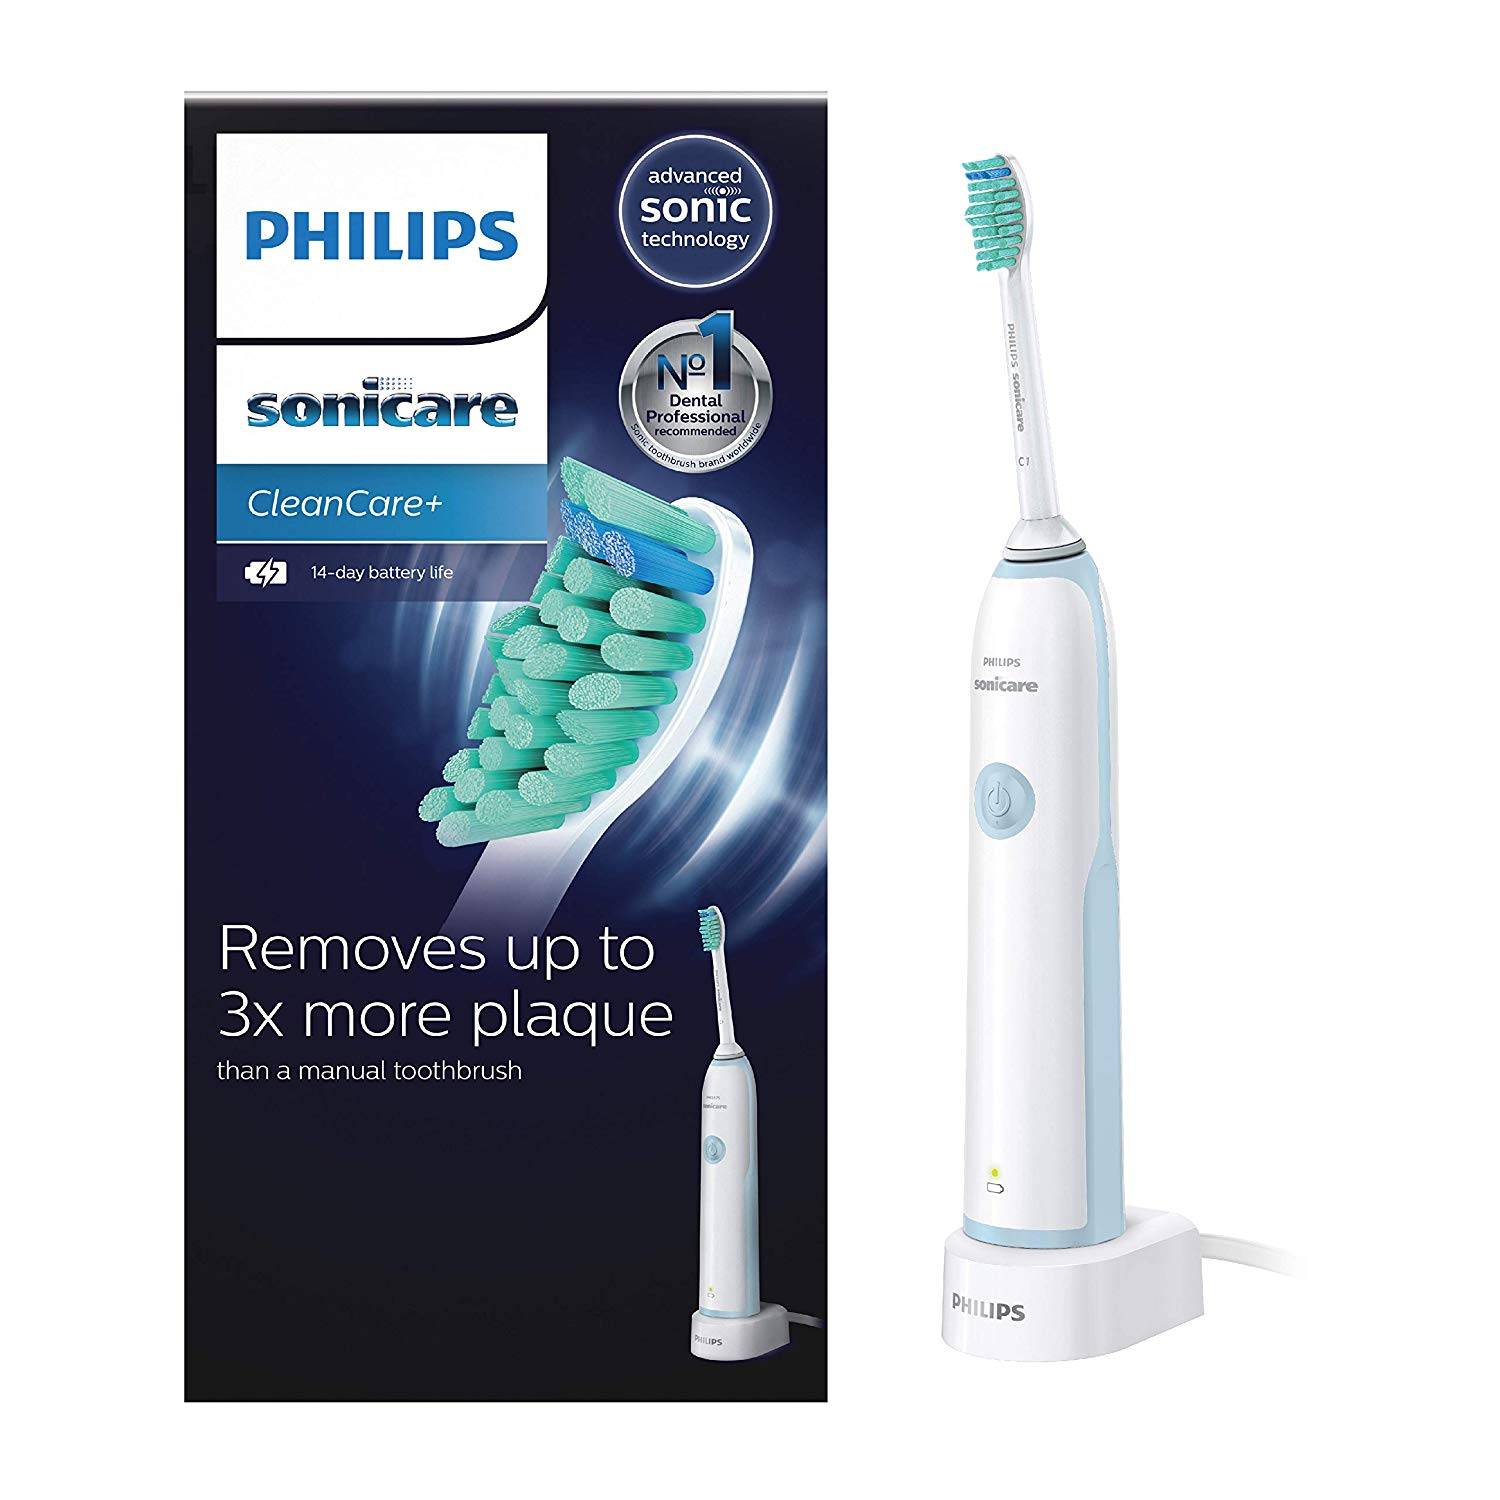 Philips Sonicare CleanCare+ Sonic Electric Rechargeable Toothbrush